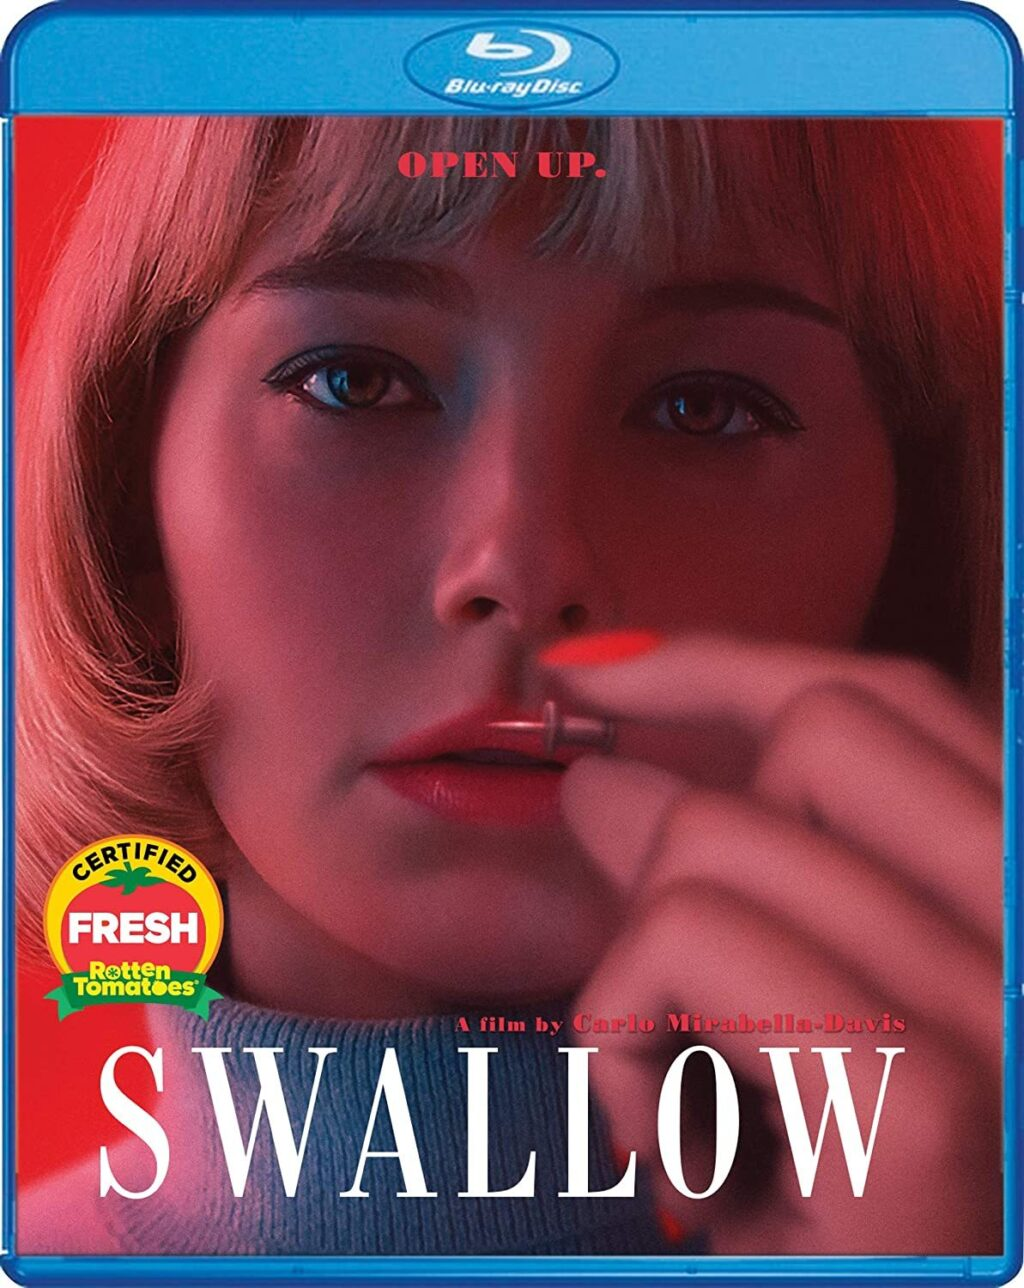 Swallow Blu ray 1024x1288 - Squirm-Inducing SWALLOW with Haley Bennett Hits Blu-ray This August